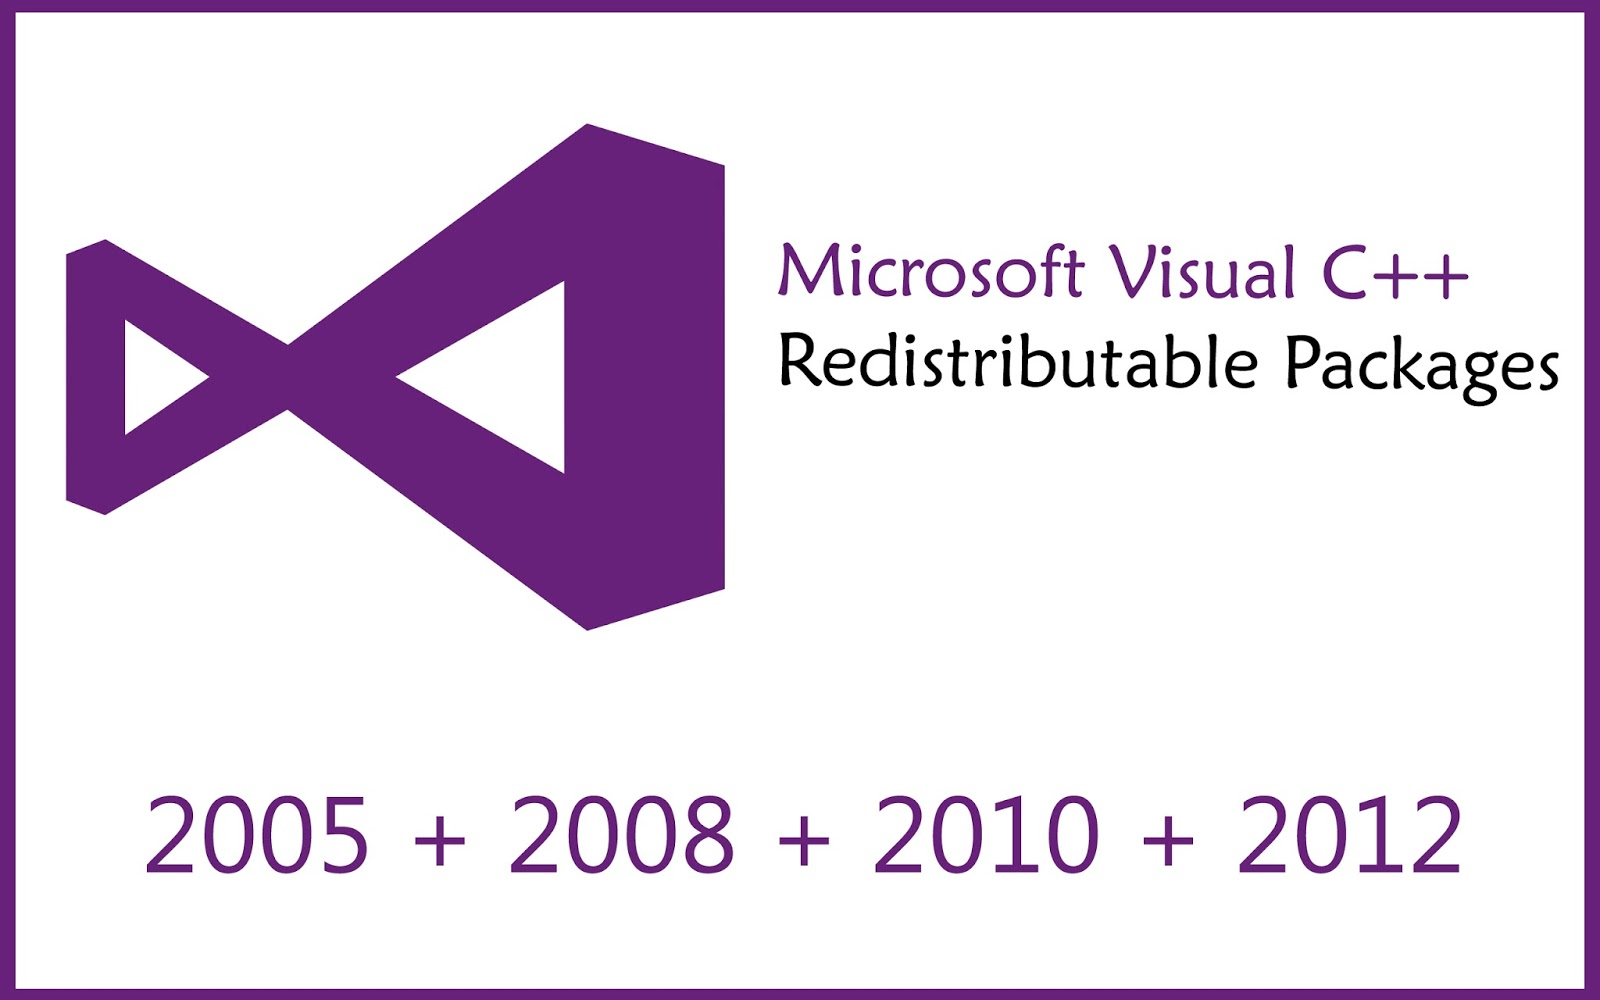 microsoft visual c++ redistributable download